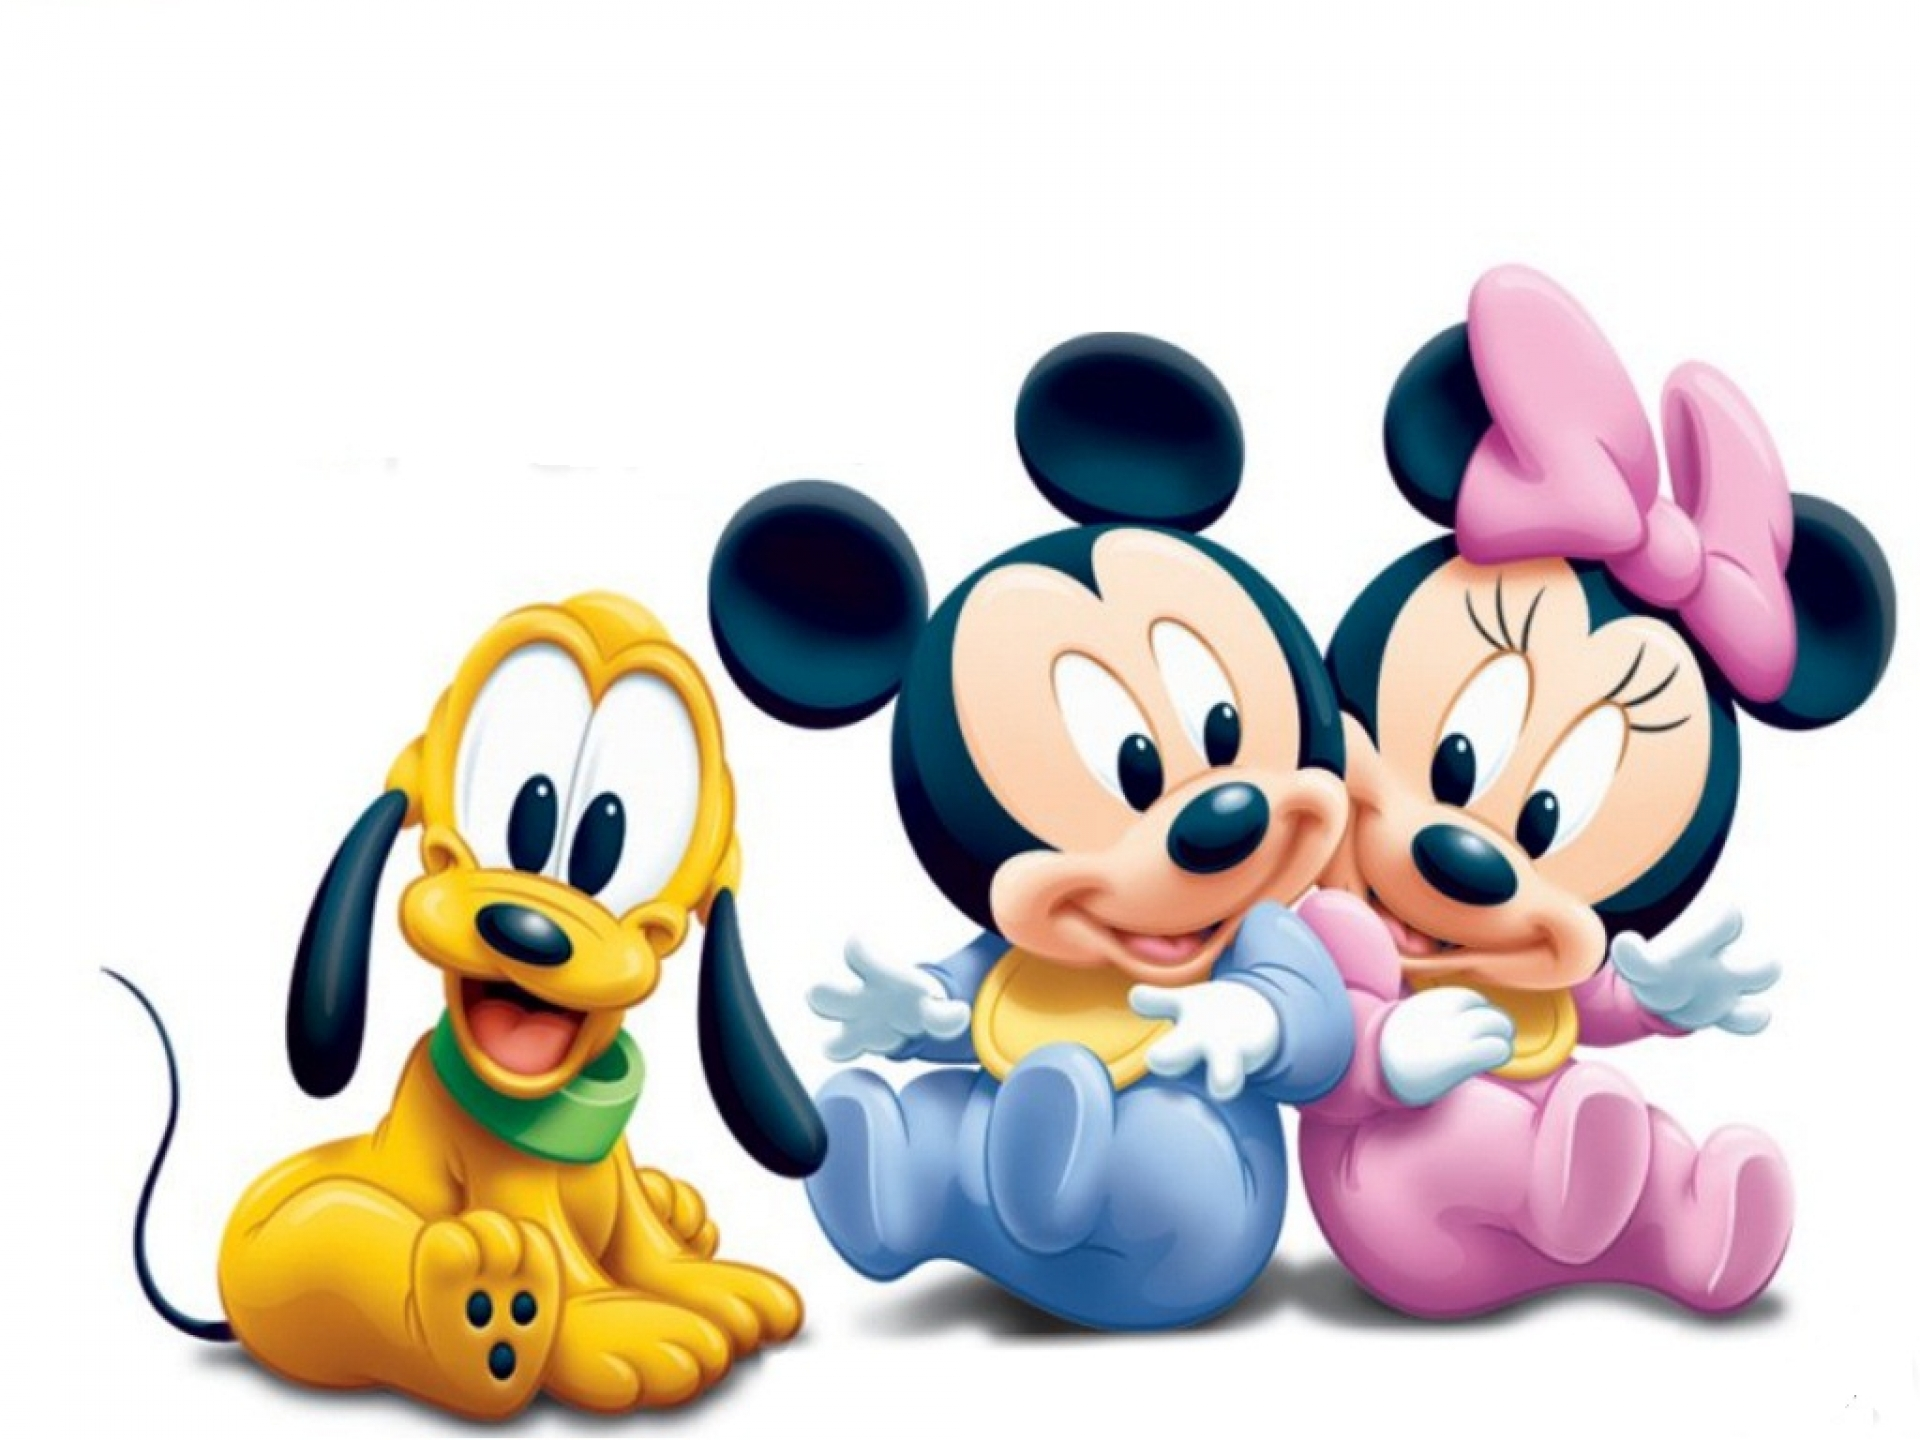 Baby Mickey Mouse Wallpapers Free Download – Free wallpaper download